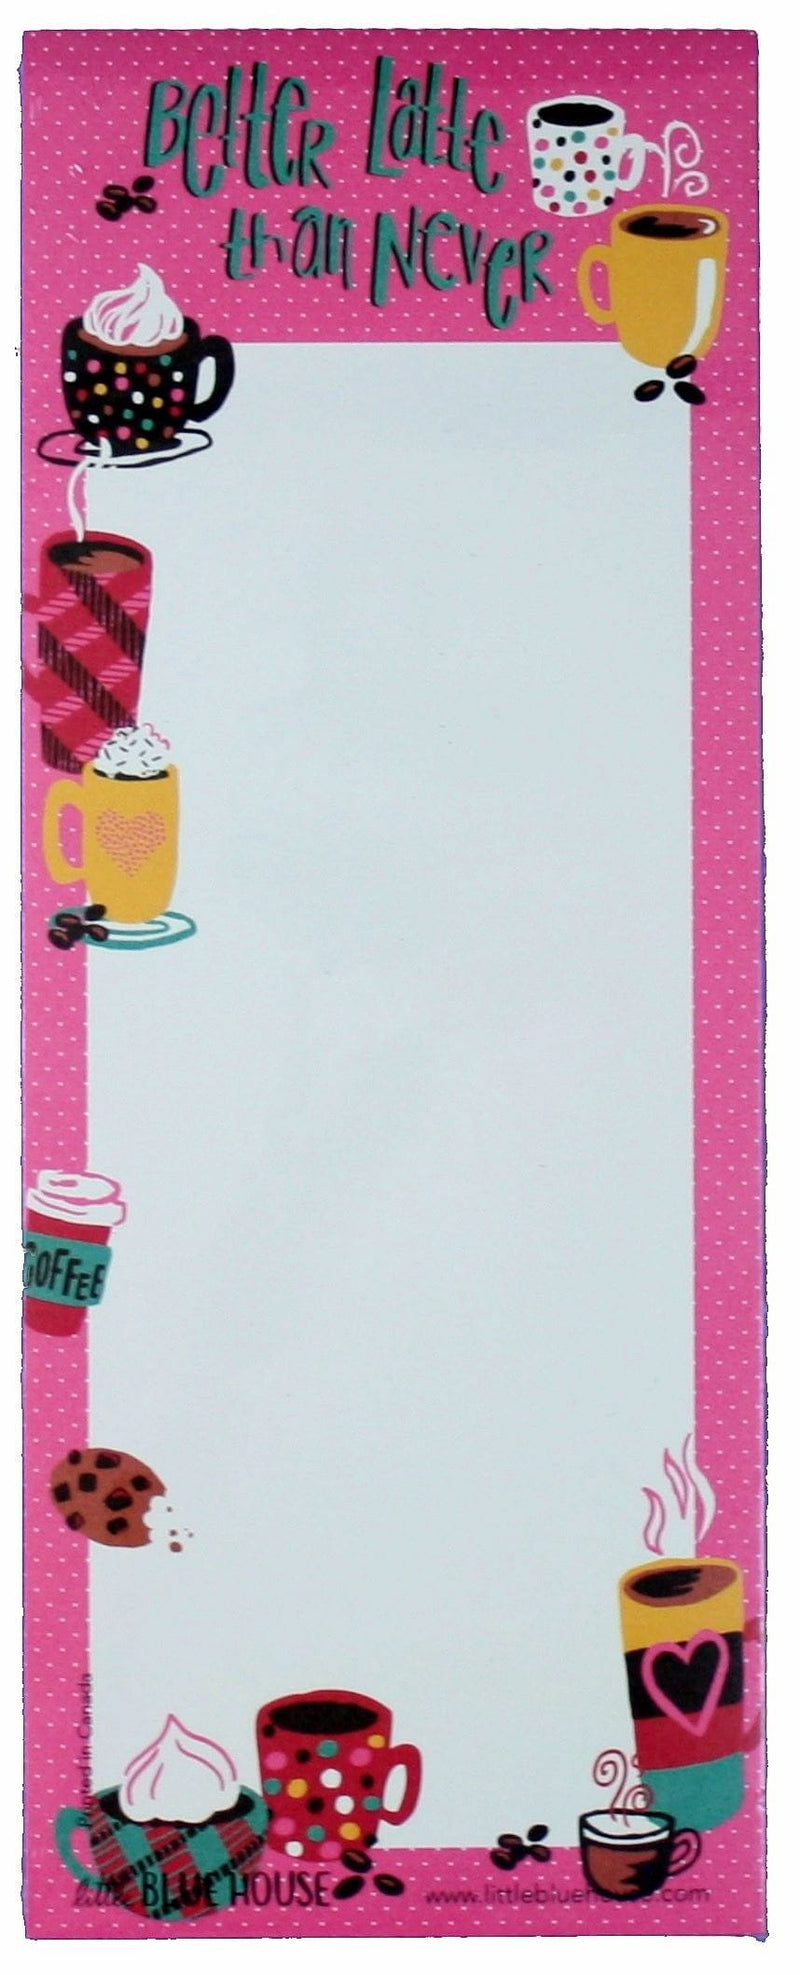 Hatley Magnetic List Pad - Better Latte Than Never